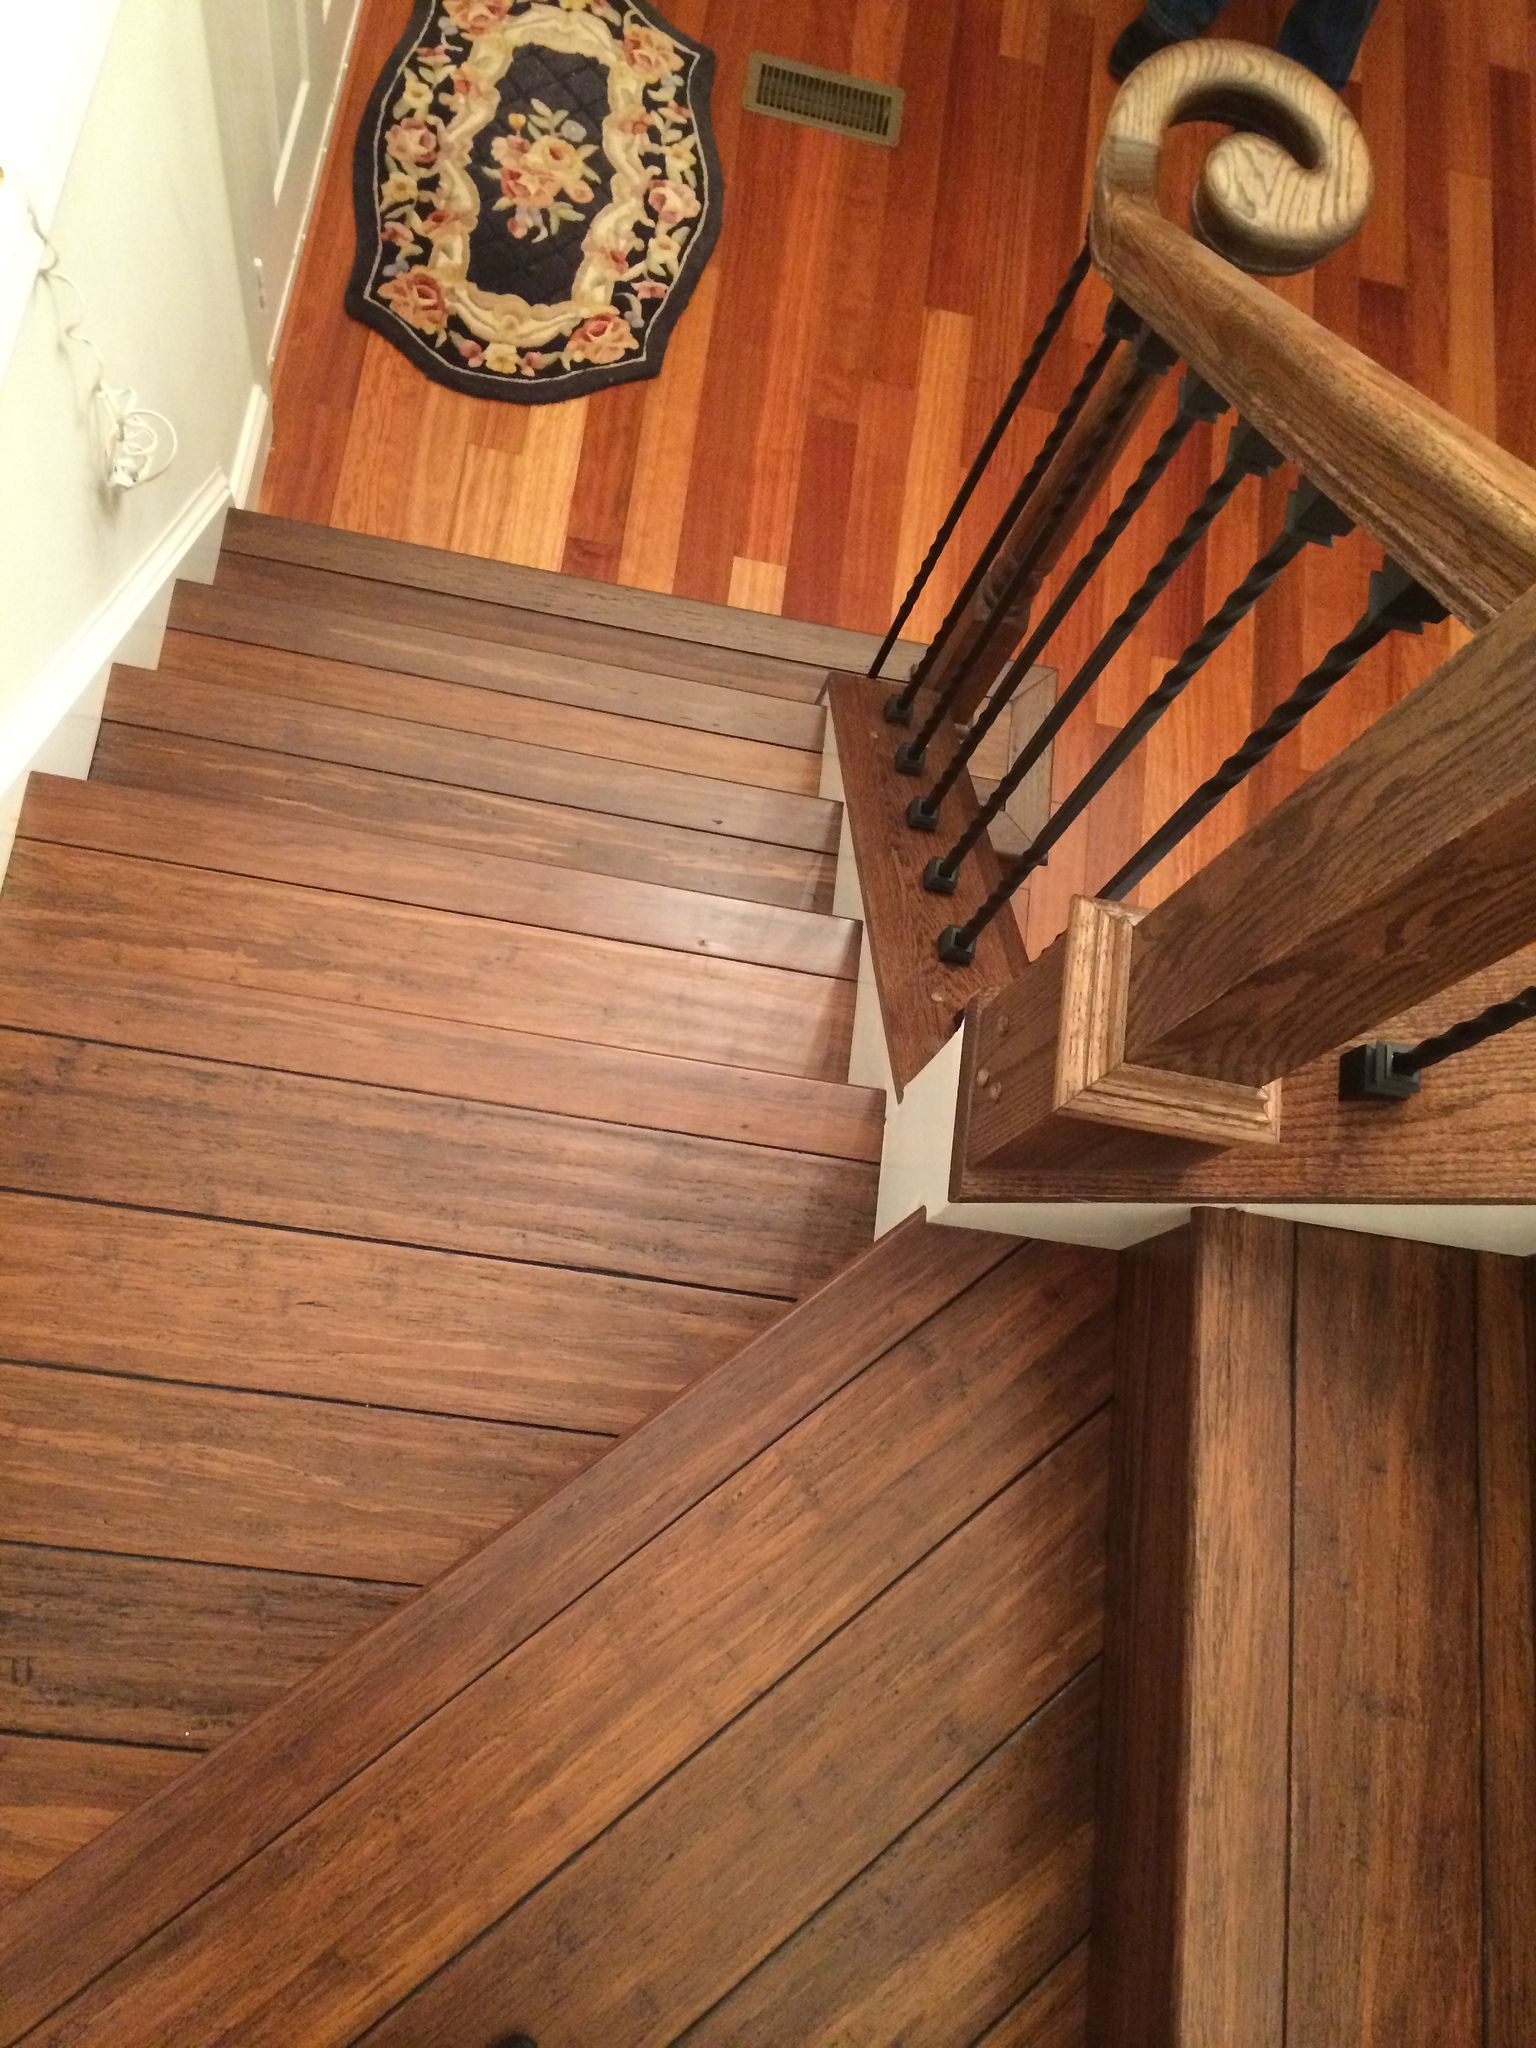 Antique Java Fossilized® Bamboo Flooring From Cali Bamboo  Bamboo Flooring  ❀  Pinterest  Bamboo Floor, Cali And Java